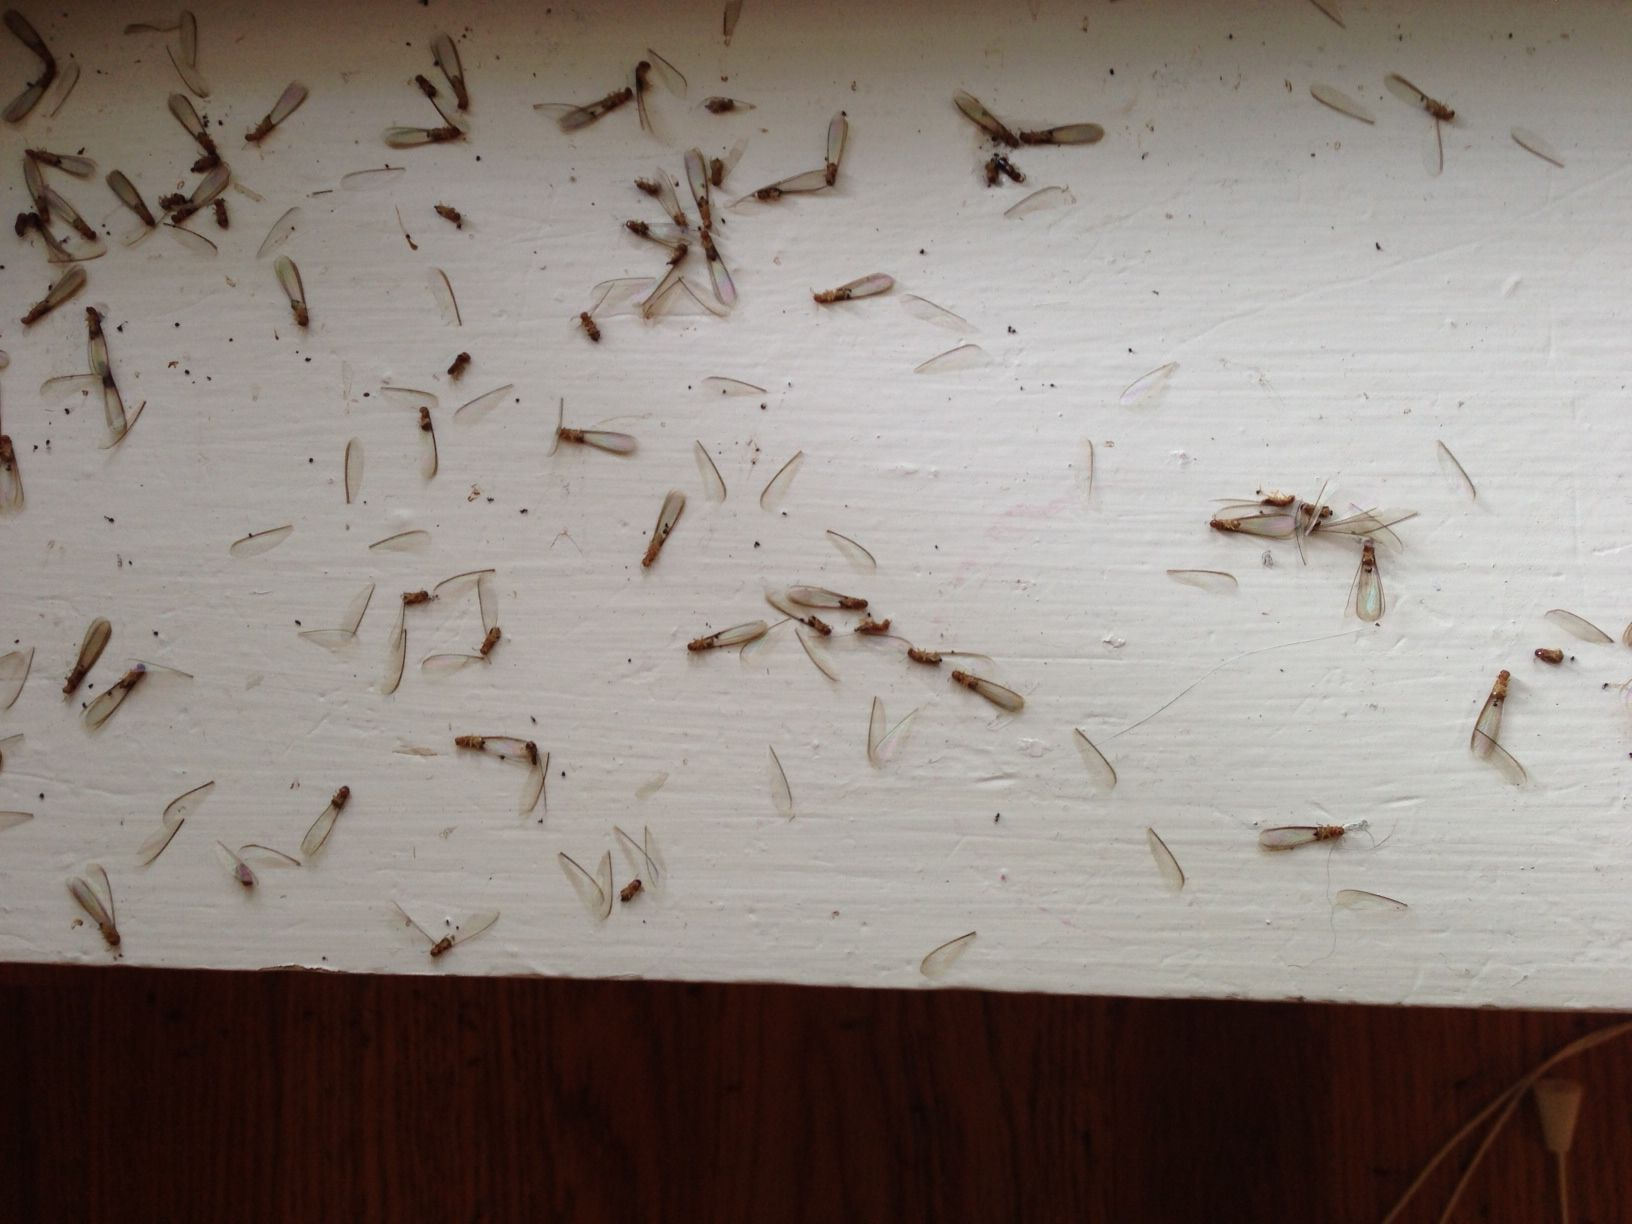 Drywood Termite Swarmers They Are Attracted To Light Therefore